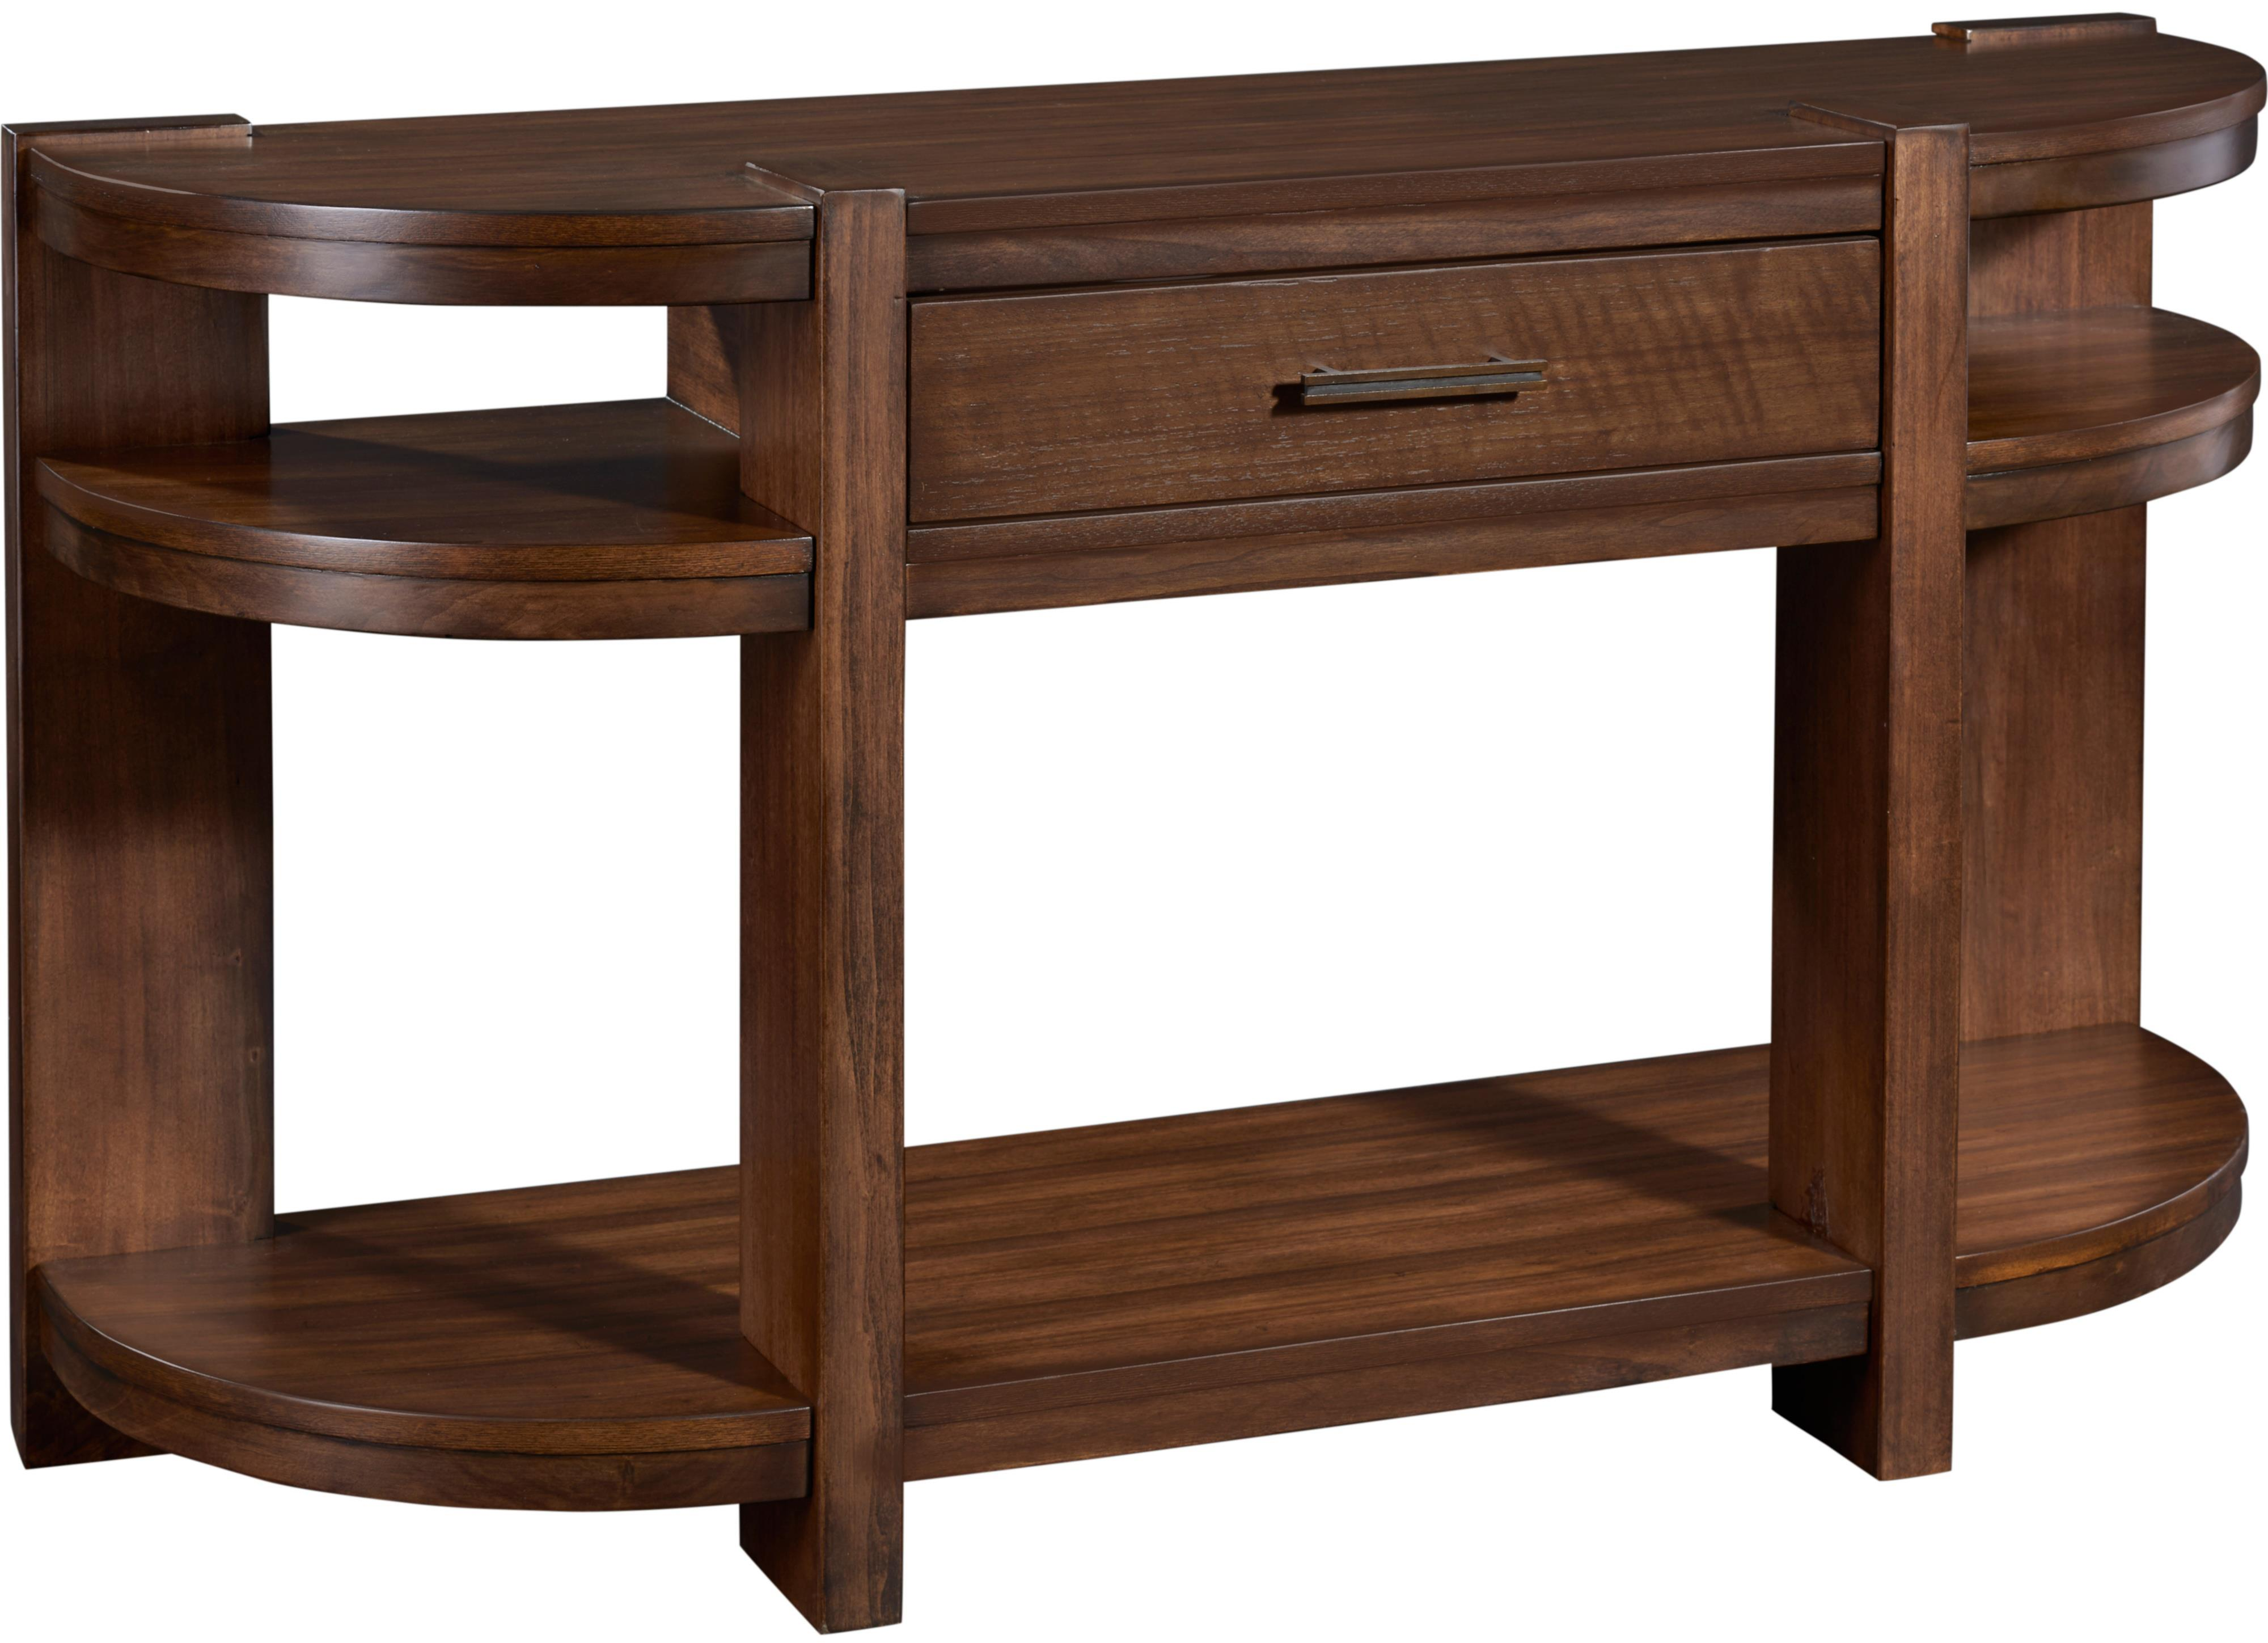 Broyhill Furniture Ryleigh Media Console Table - Item Number: 3185-009